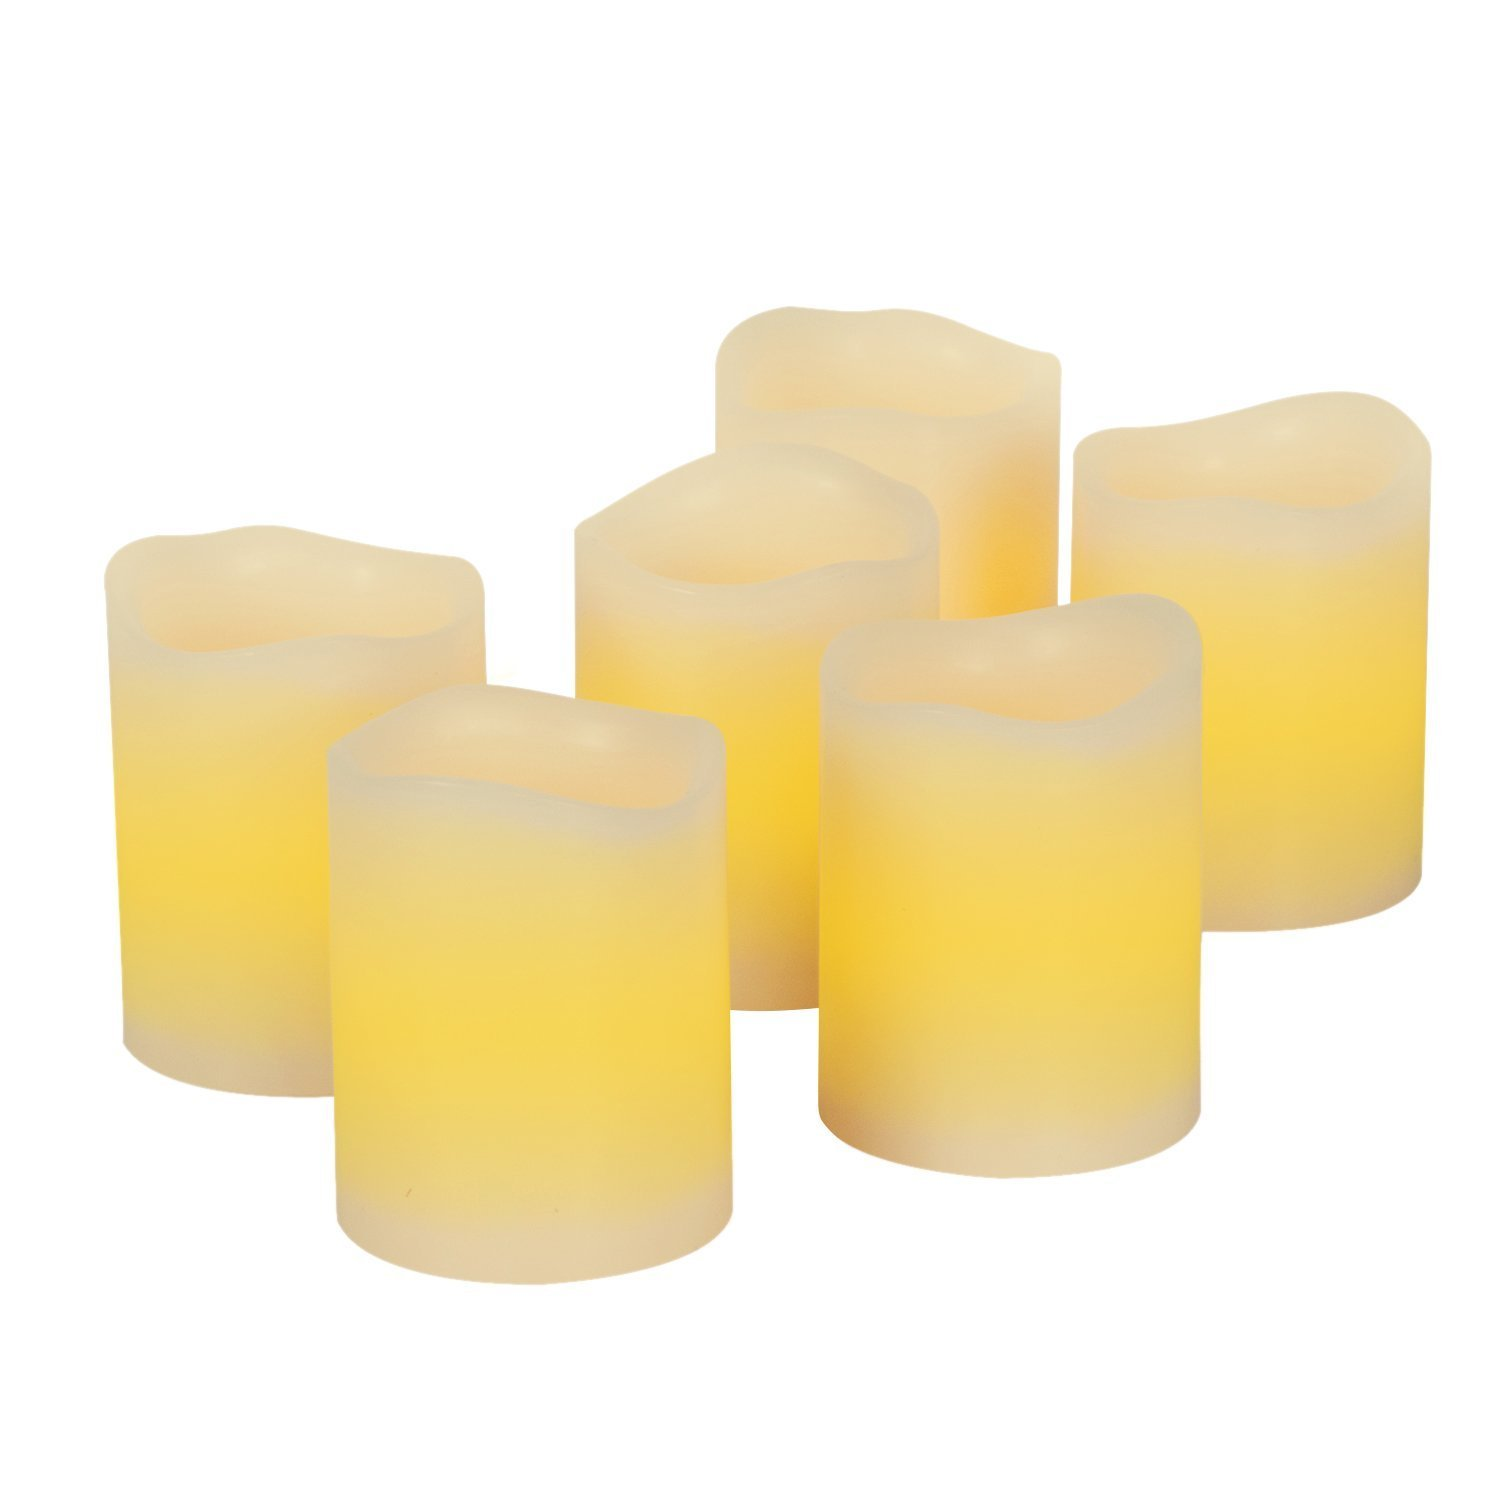 Kohree Real Wax Flameless Candles with Built-in Daily-Cycle Timer, Outdoor Battery Operated Led Candles Light - 6 Set Votive Candles, Yellow, Melted Edge